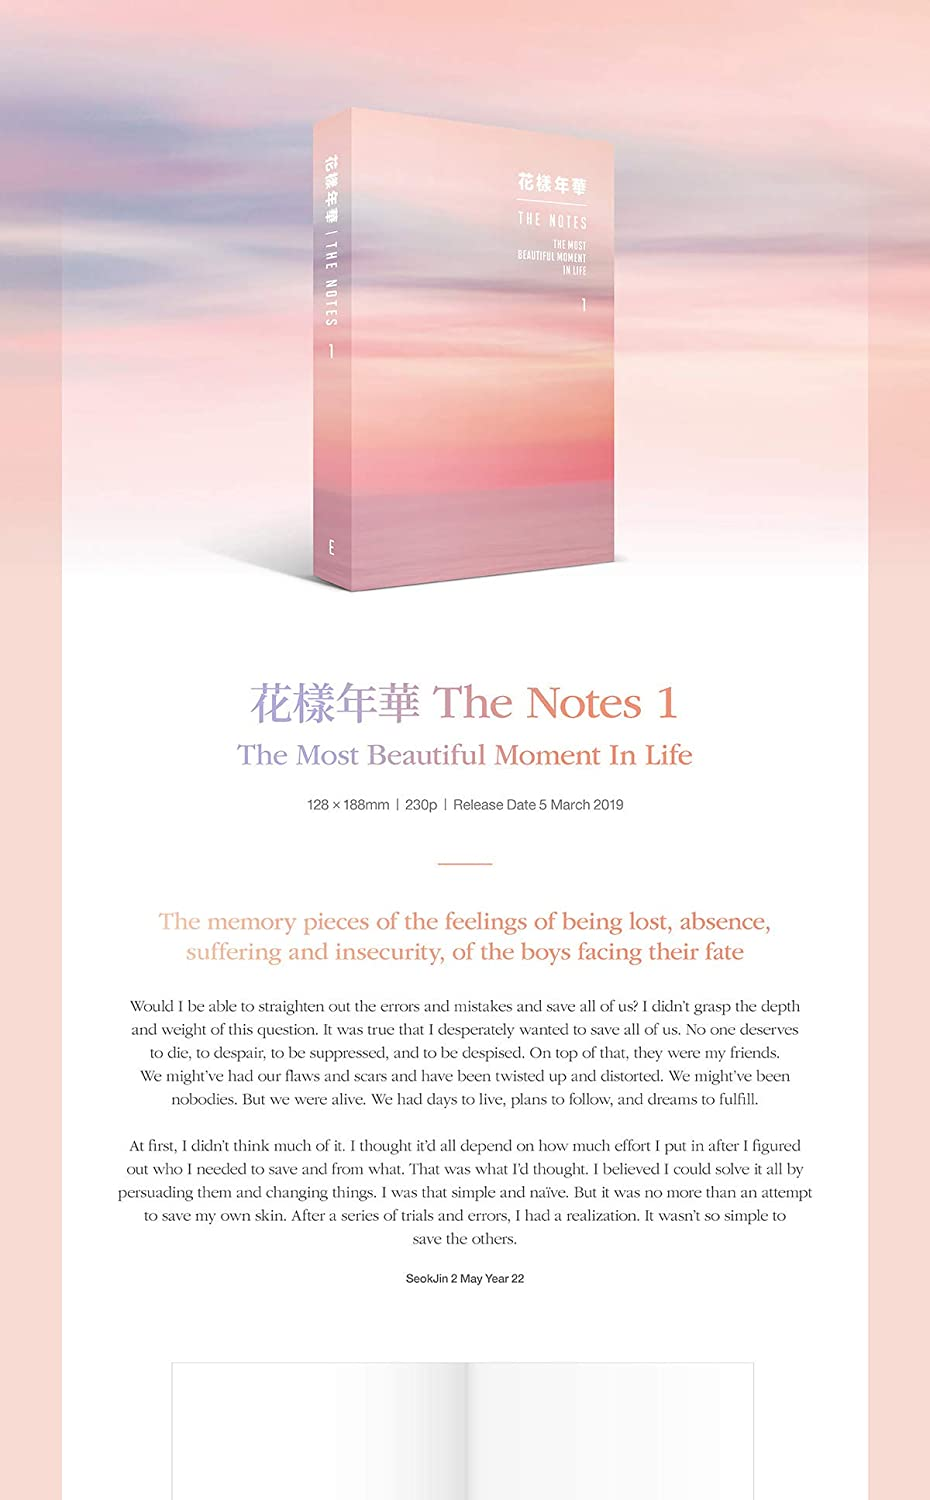 BTS 花樣年華 THE MOST BEAUTIFUL MOMENT IN LIFE NOTES 1 [ENG] BOOK+Special NOTE  BOOK